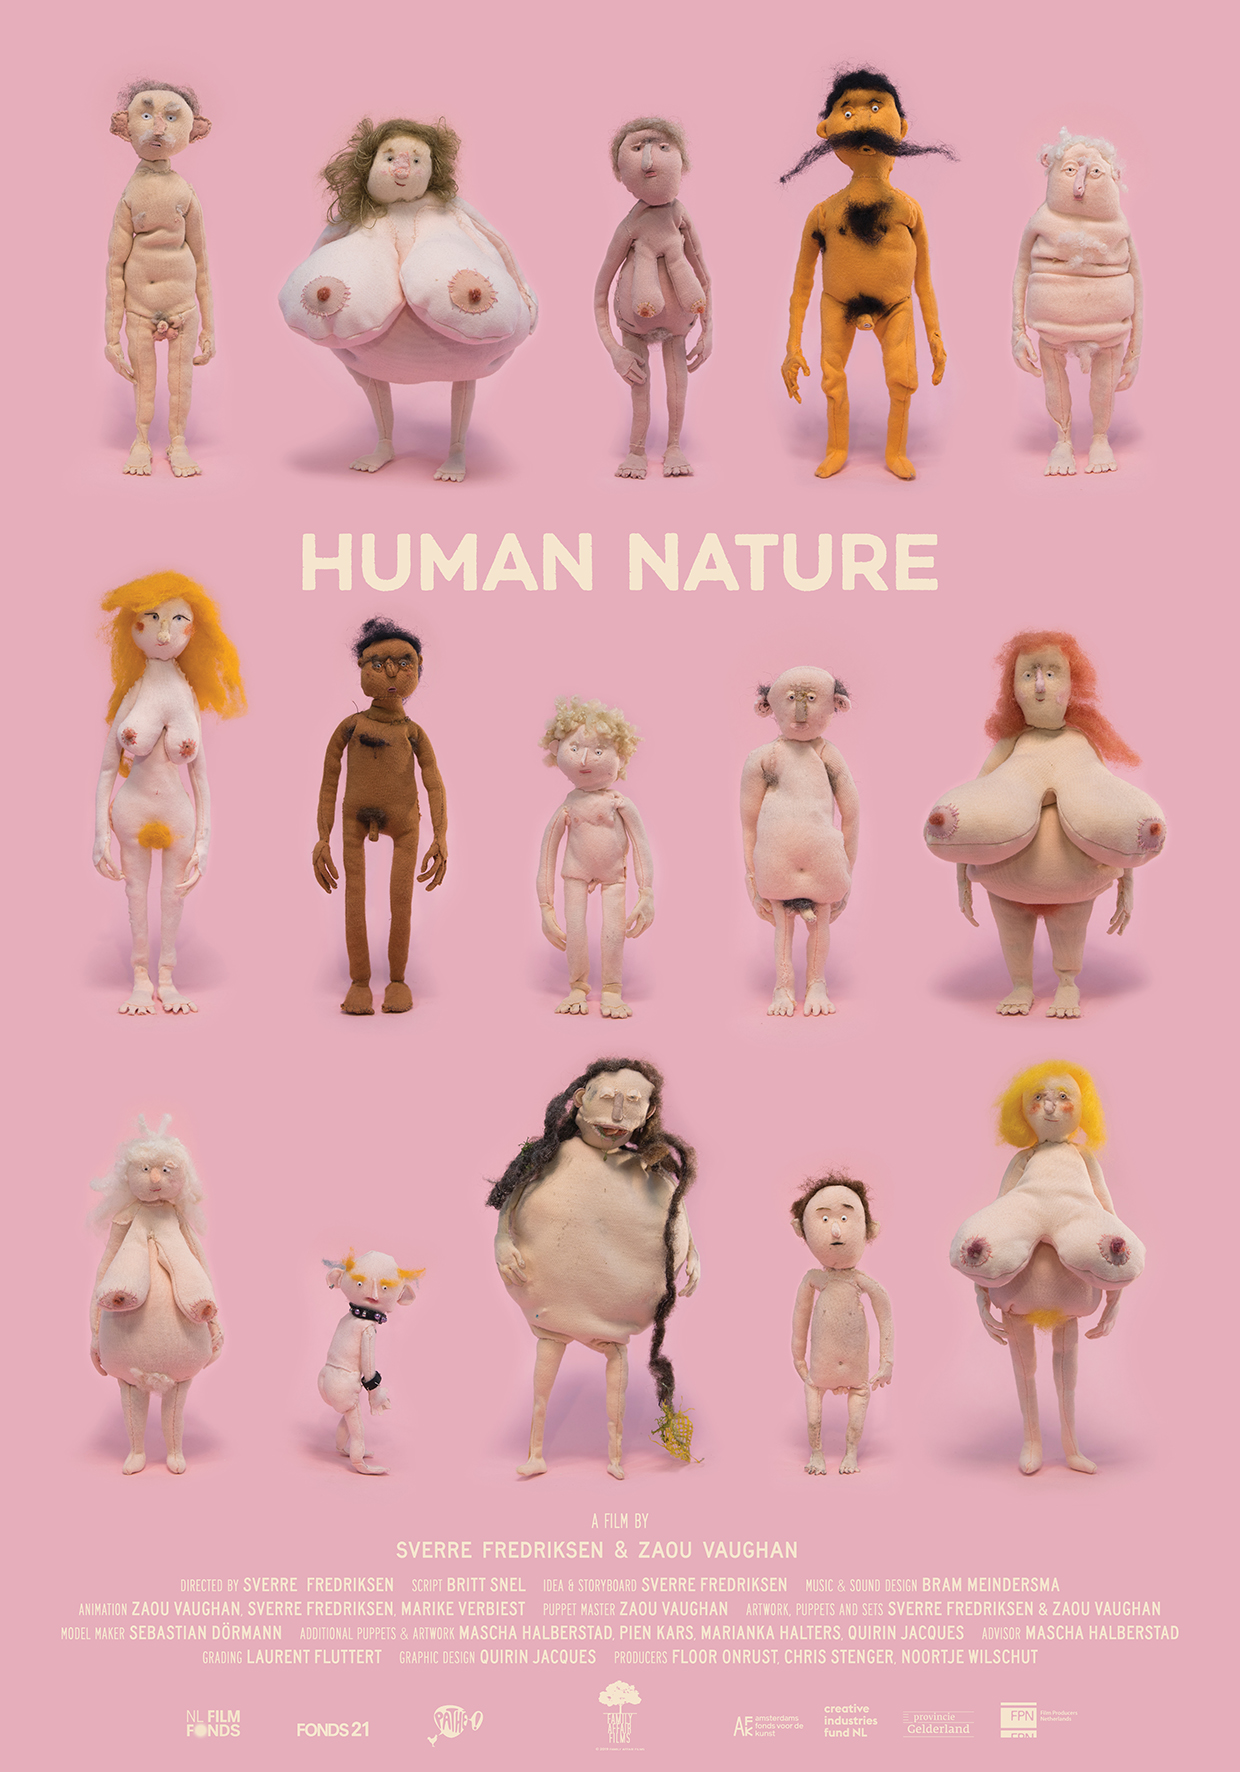 Very proud that we are selected for TIFF's Short Cuts Programme with HUMAN NATURE! - Big hooray together with director Sverre Fredriksen animator Zaou Vaughan and writer Britt Snel! This film is supported by Nederlands Filmfonds Fonds 21 PathéAmsterdams Fonds voor de Kunst Stimuleringsfonds Creatieve Industrie Provincie Gelderland Filmproducenten Nederland Thank you!!